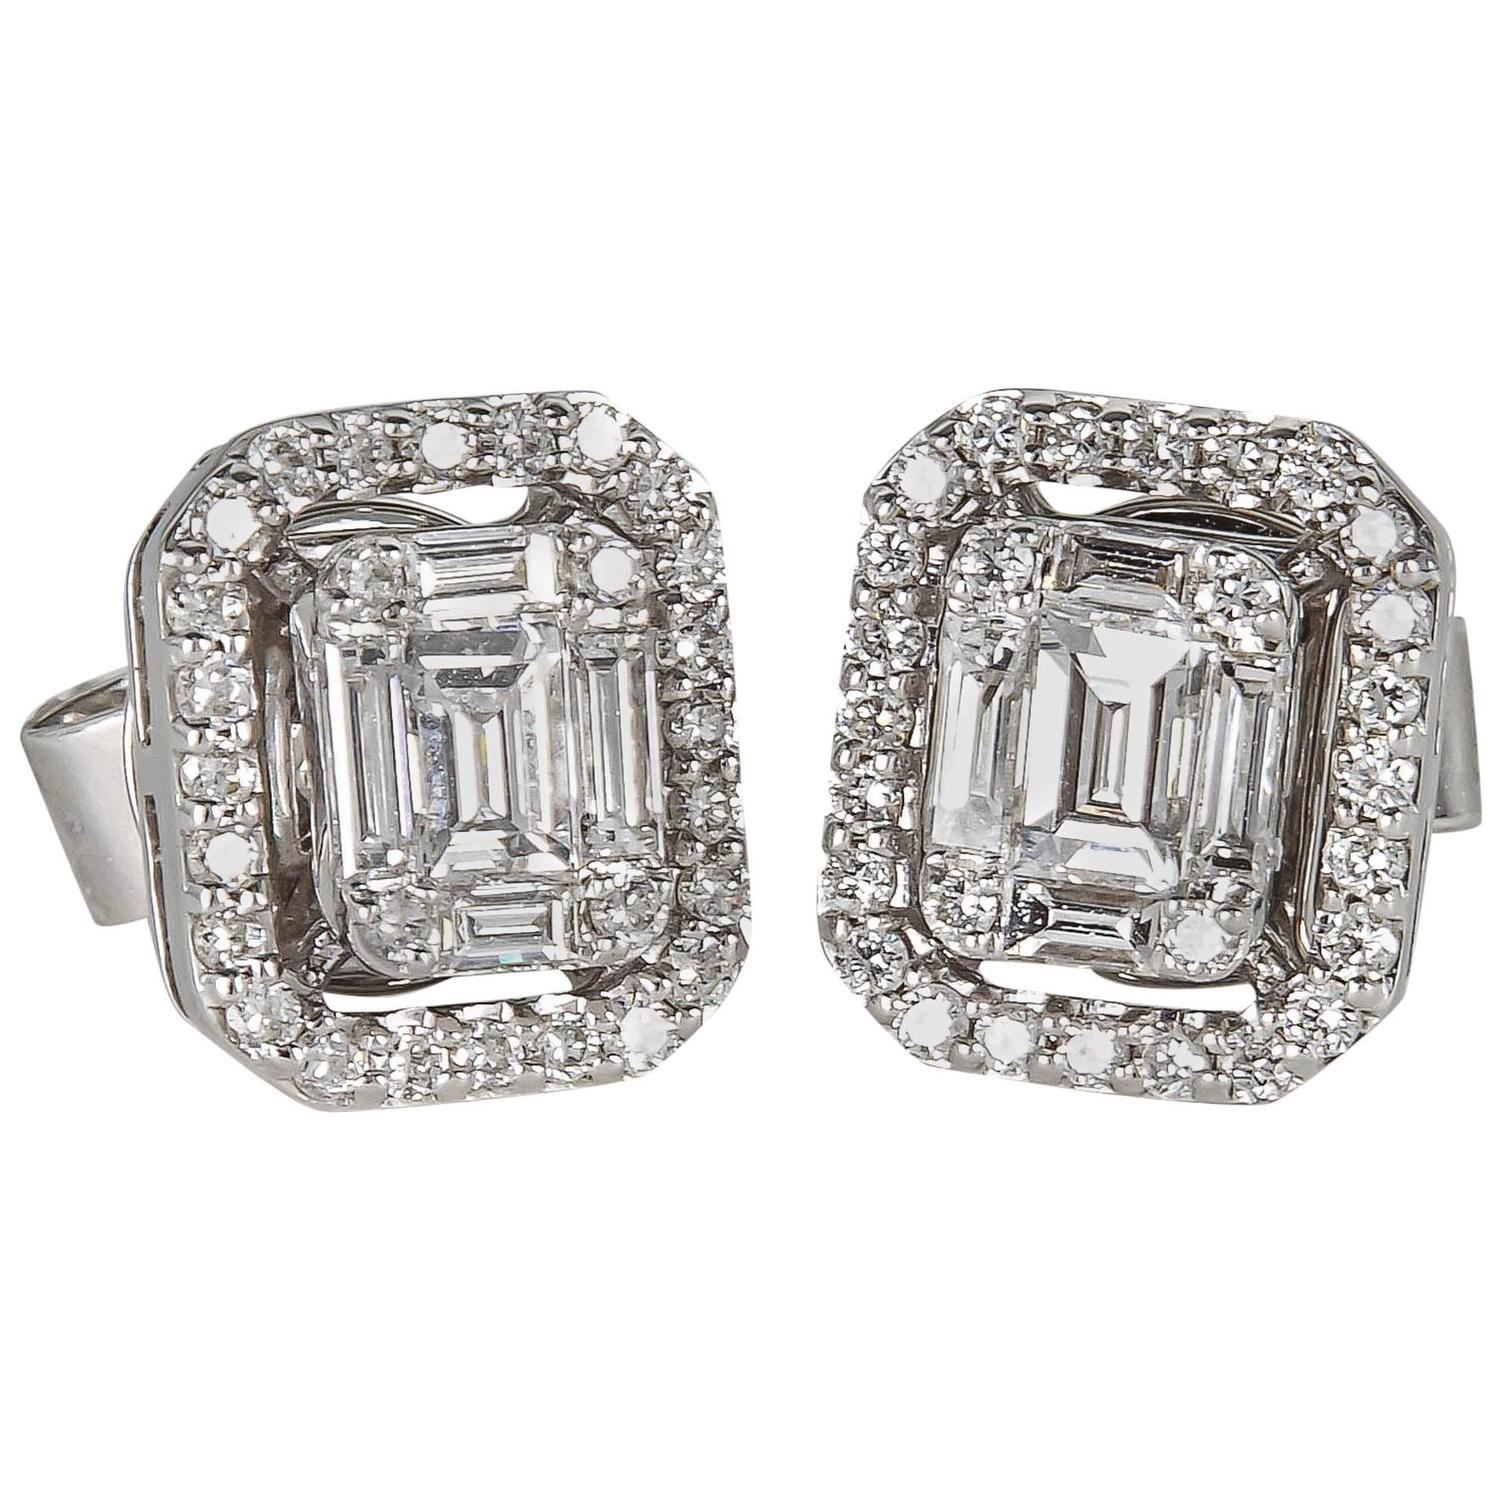 asscher diamond sparkling platinum wg that square earrings carat range the are stud blog discover of beyond ordinary princess in nl cut